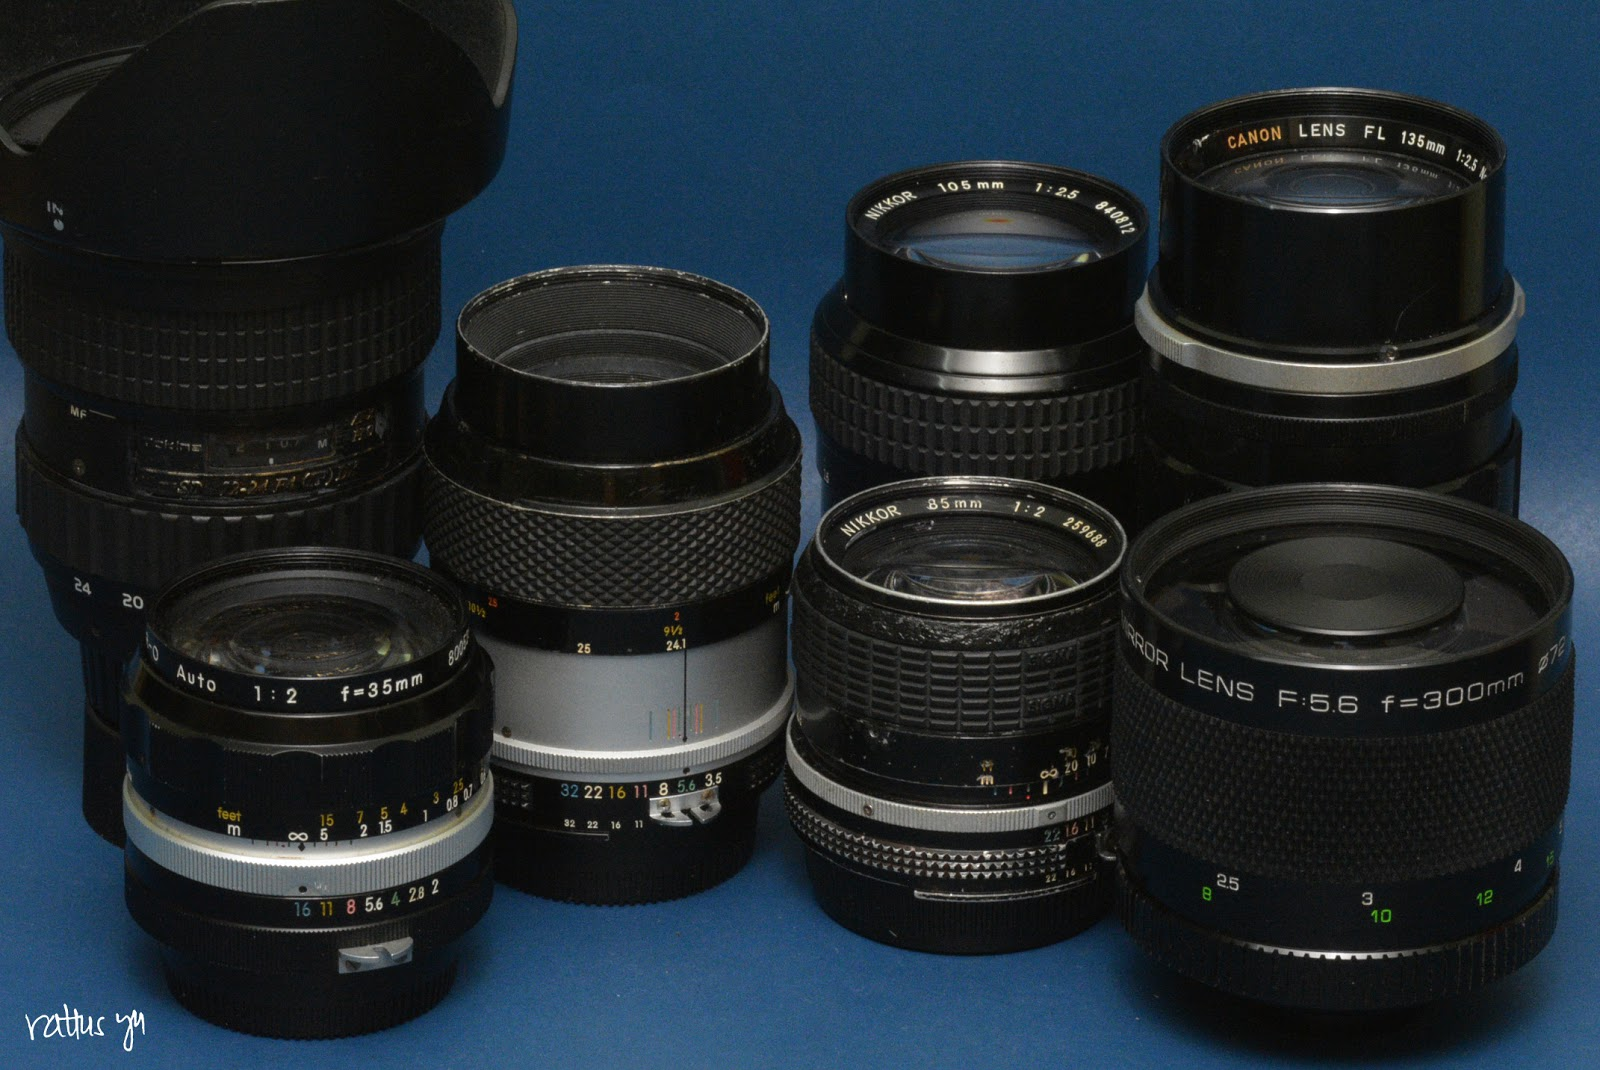 What Lens To Buy For Shooting Portraiture With Blurry Backgrounds?